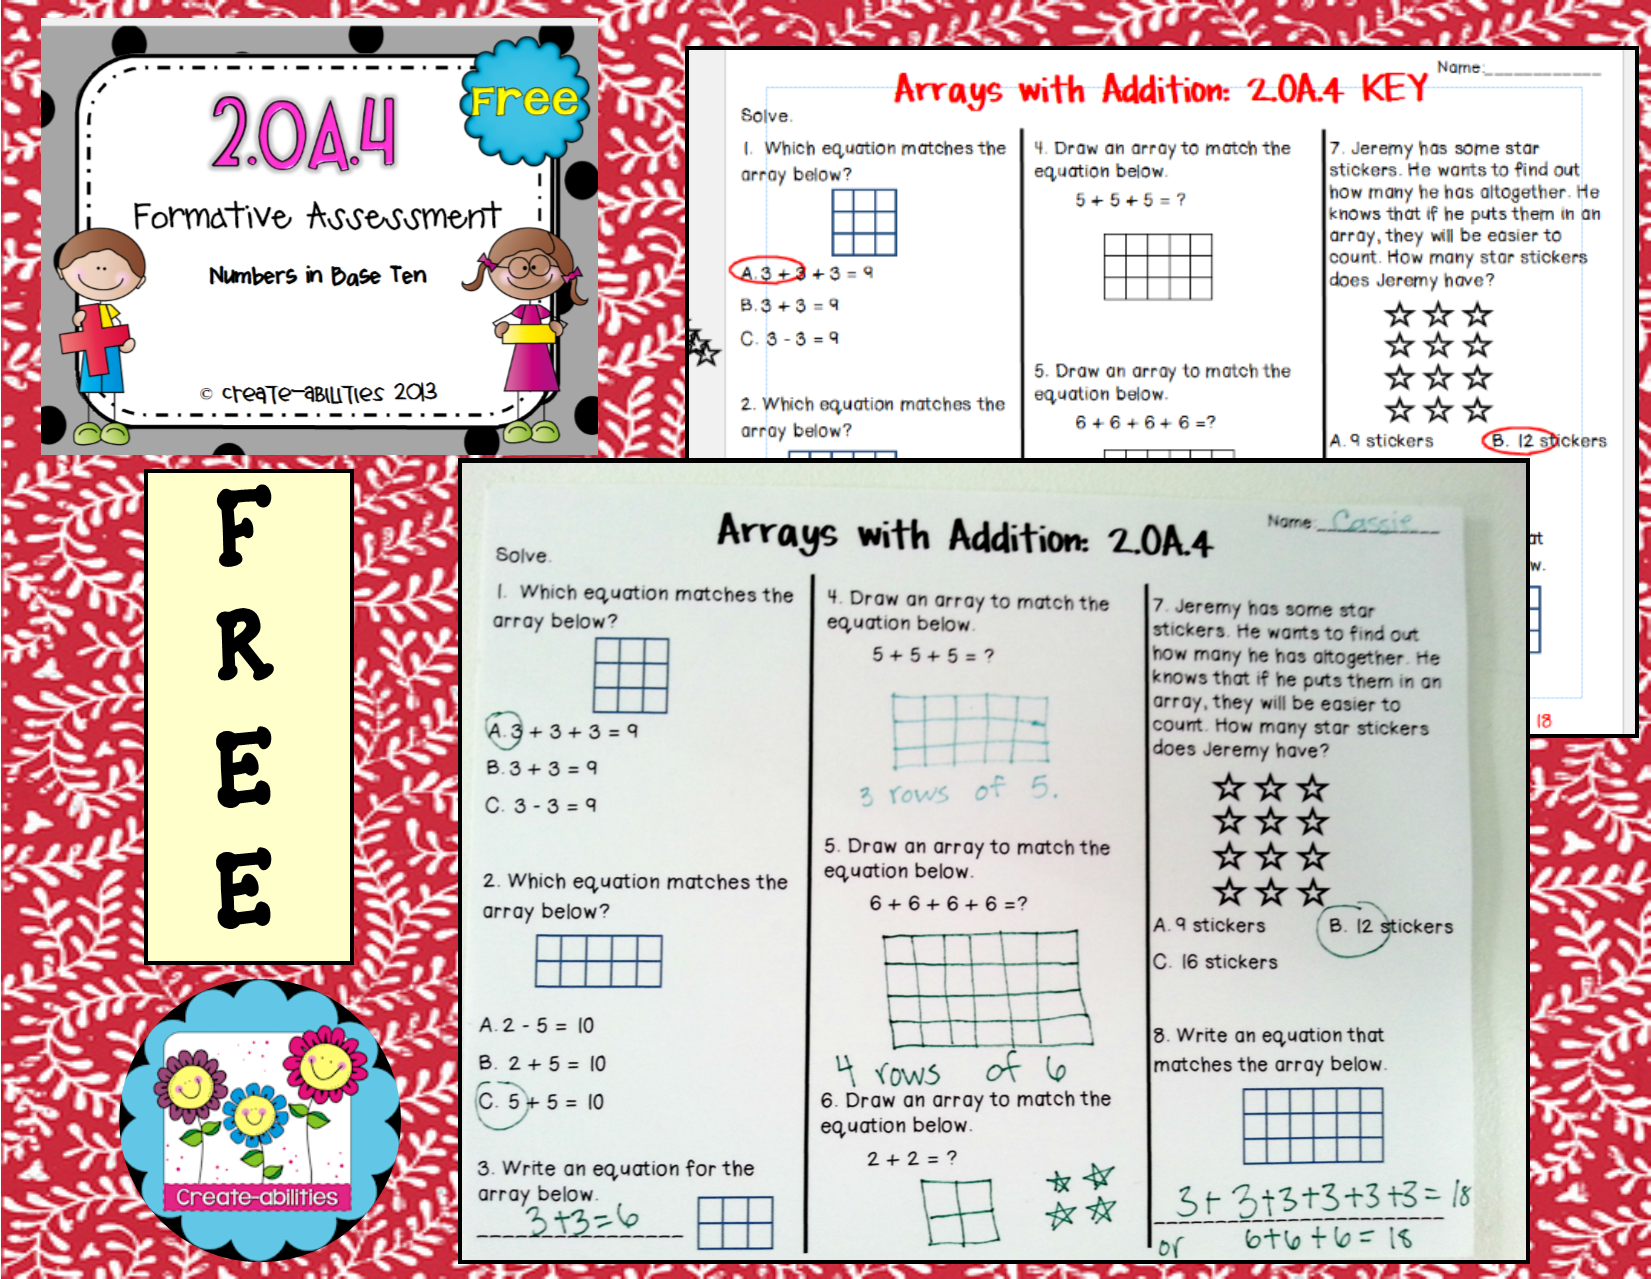 Free 2 Oa 4 Formative Assessment This Assessment Covers